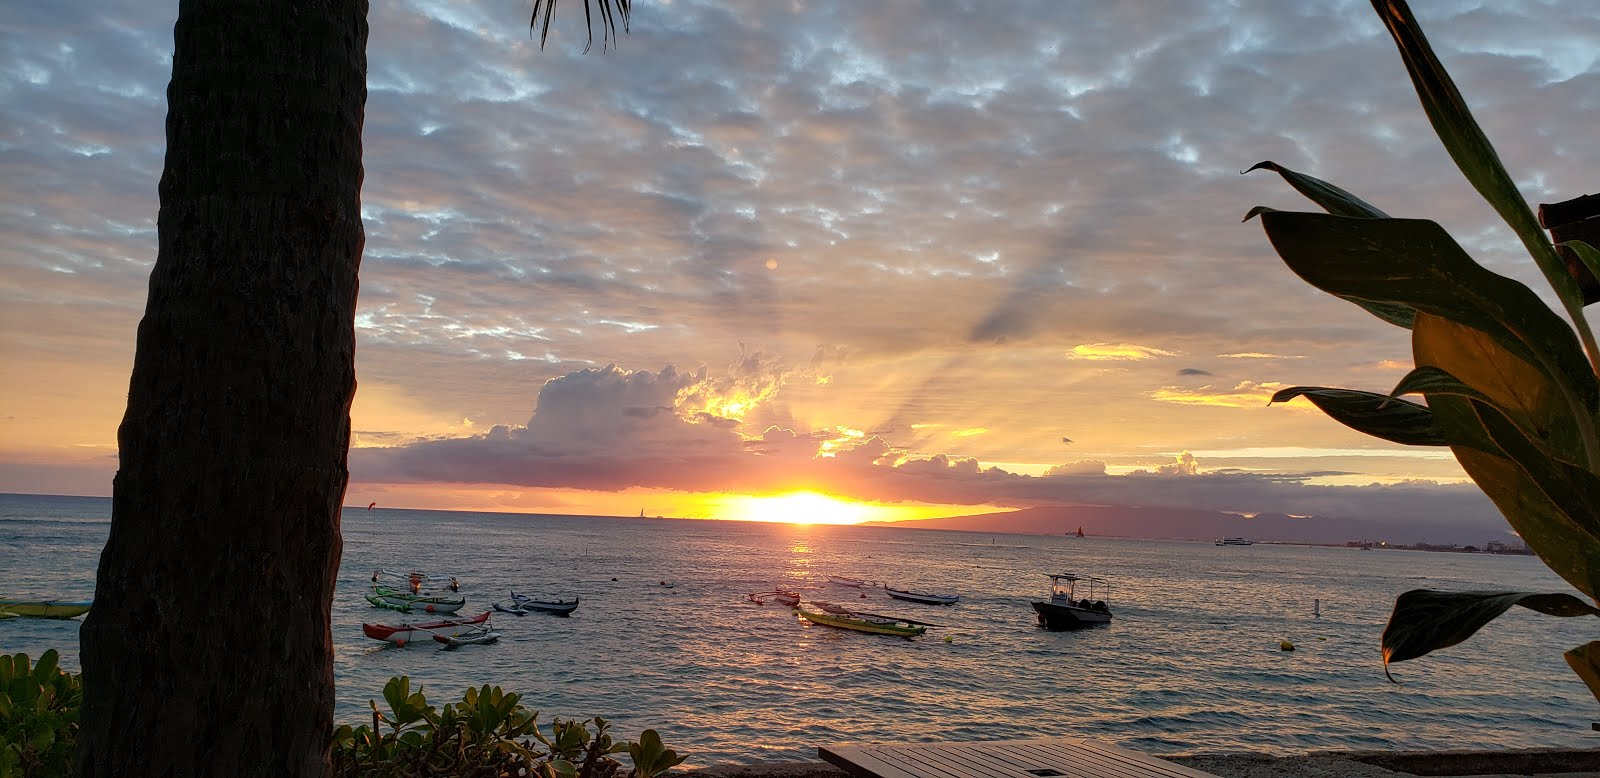 Sunset at Outrigger Canoe Club